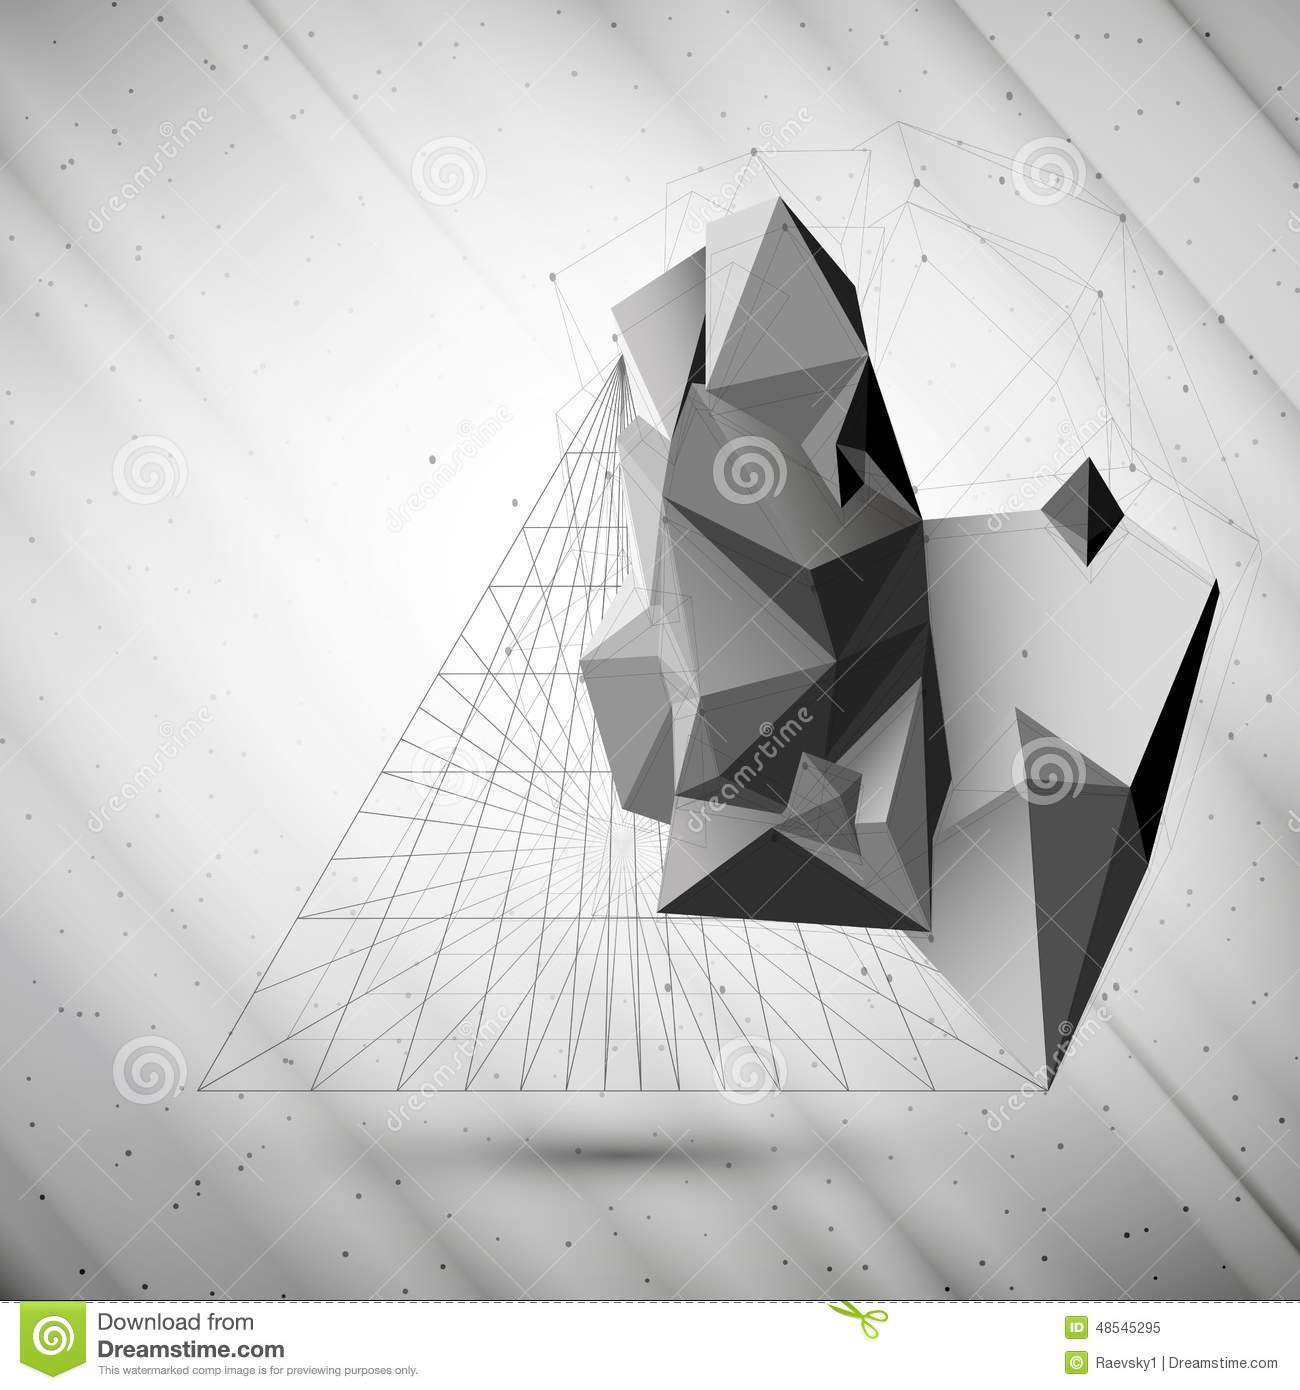 Abstract 3d Pyramid Vector Template For Business Stock Vector